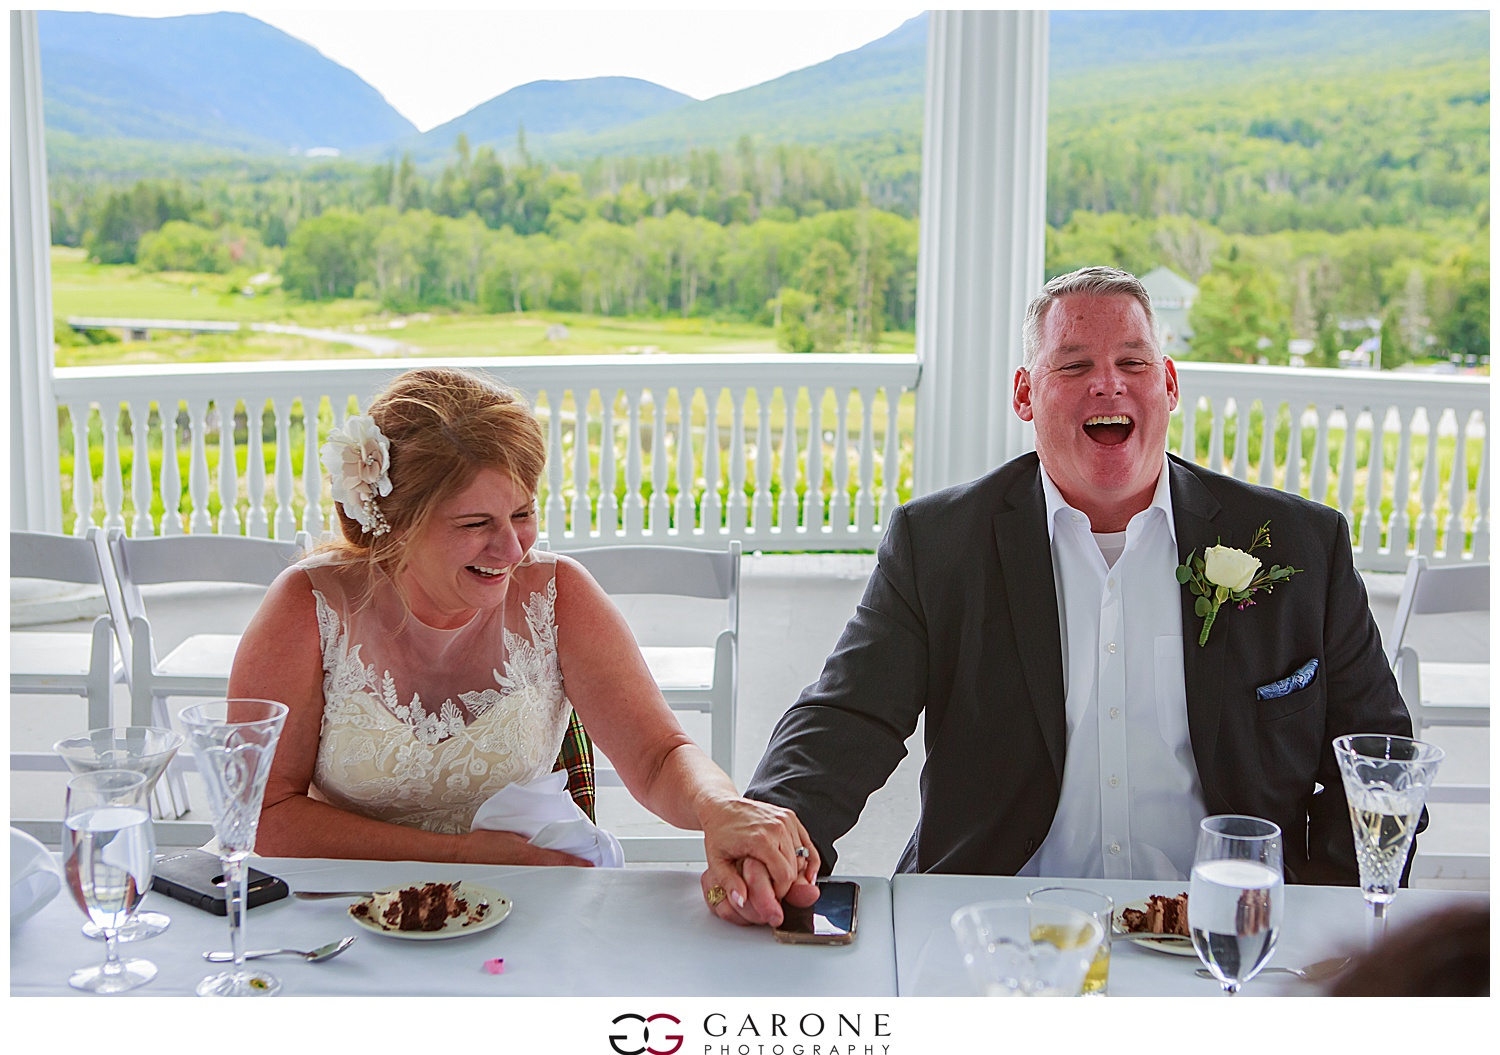 Brian_Kelly_Omni_Mount_Washington_Wedding_Garone_Photography_Wedding_NH_Photography_0020.jpg